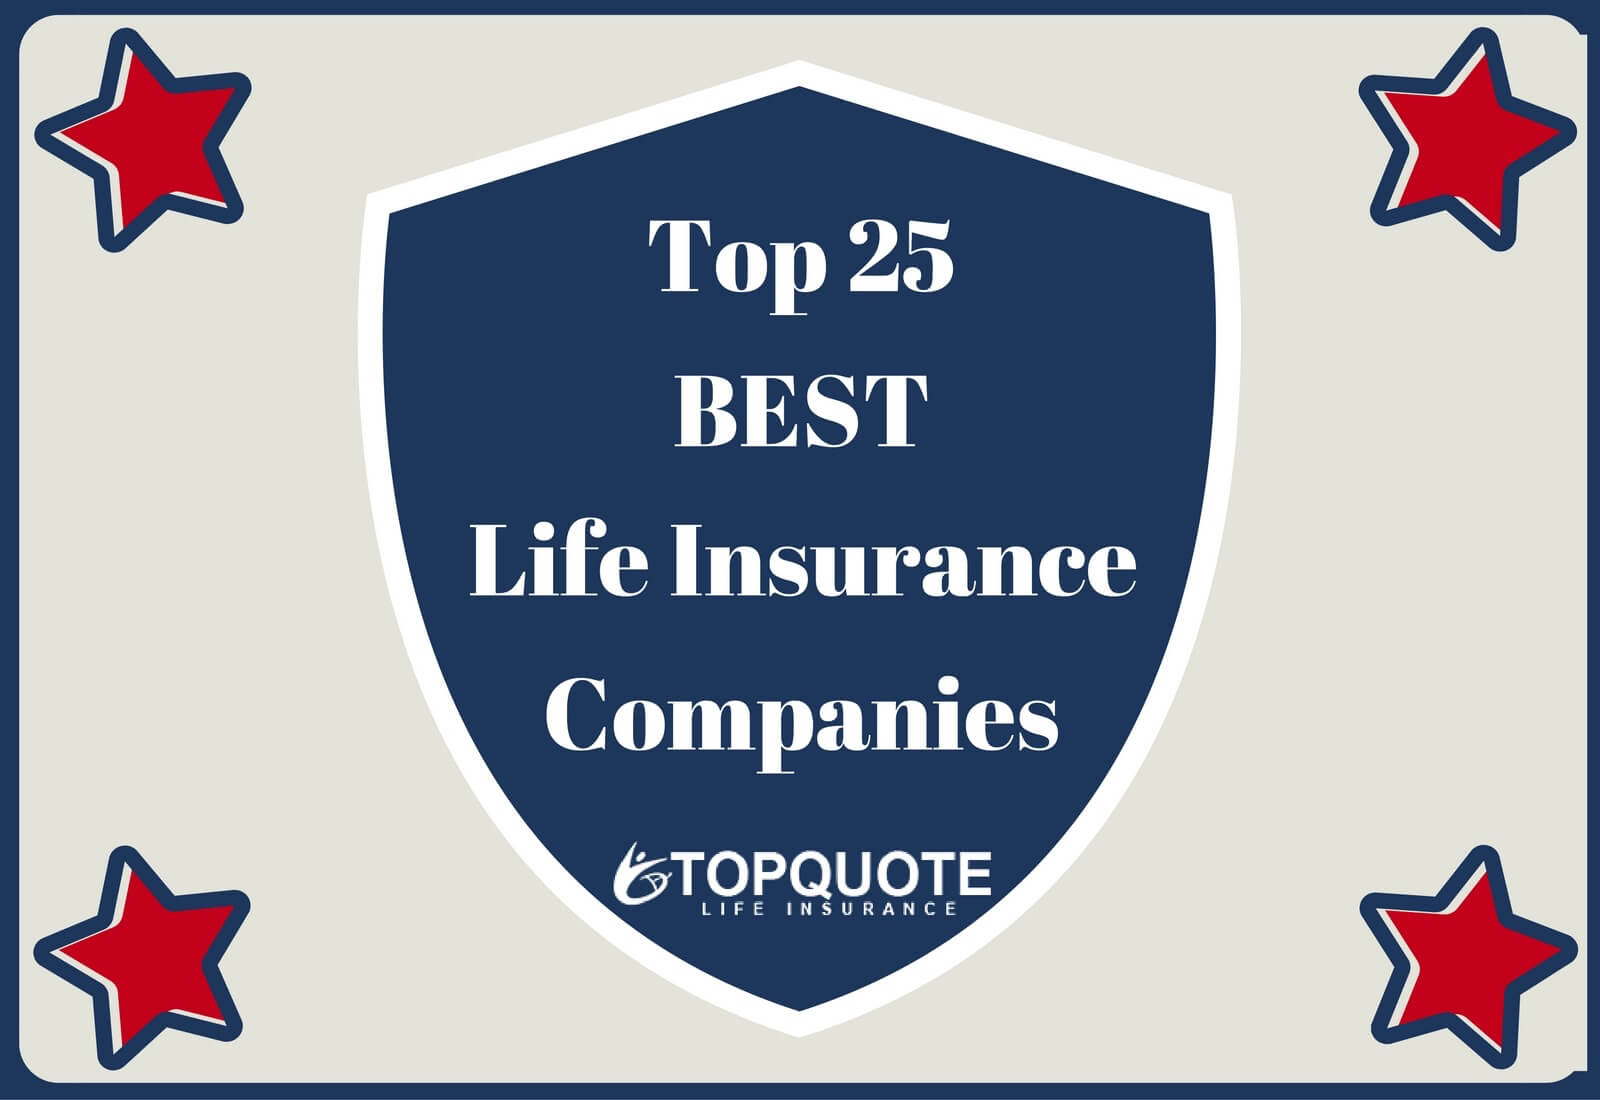 Fidelity Life Insurance Quotes Top 25 Best Life Insurance Companies Choosing The Perfect Coverage